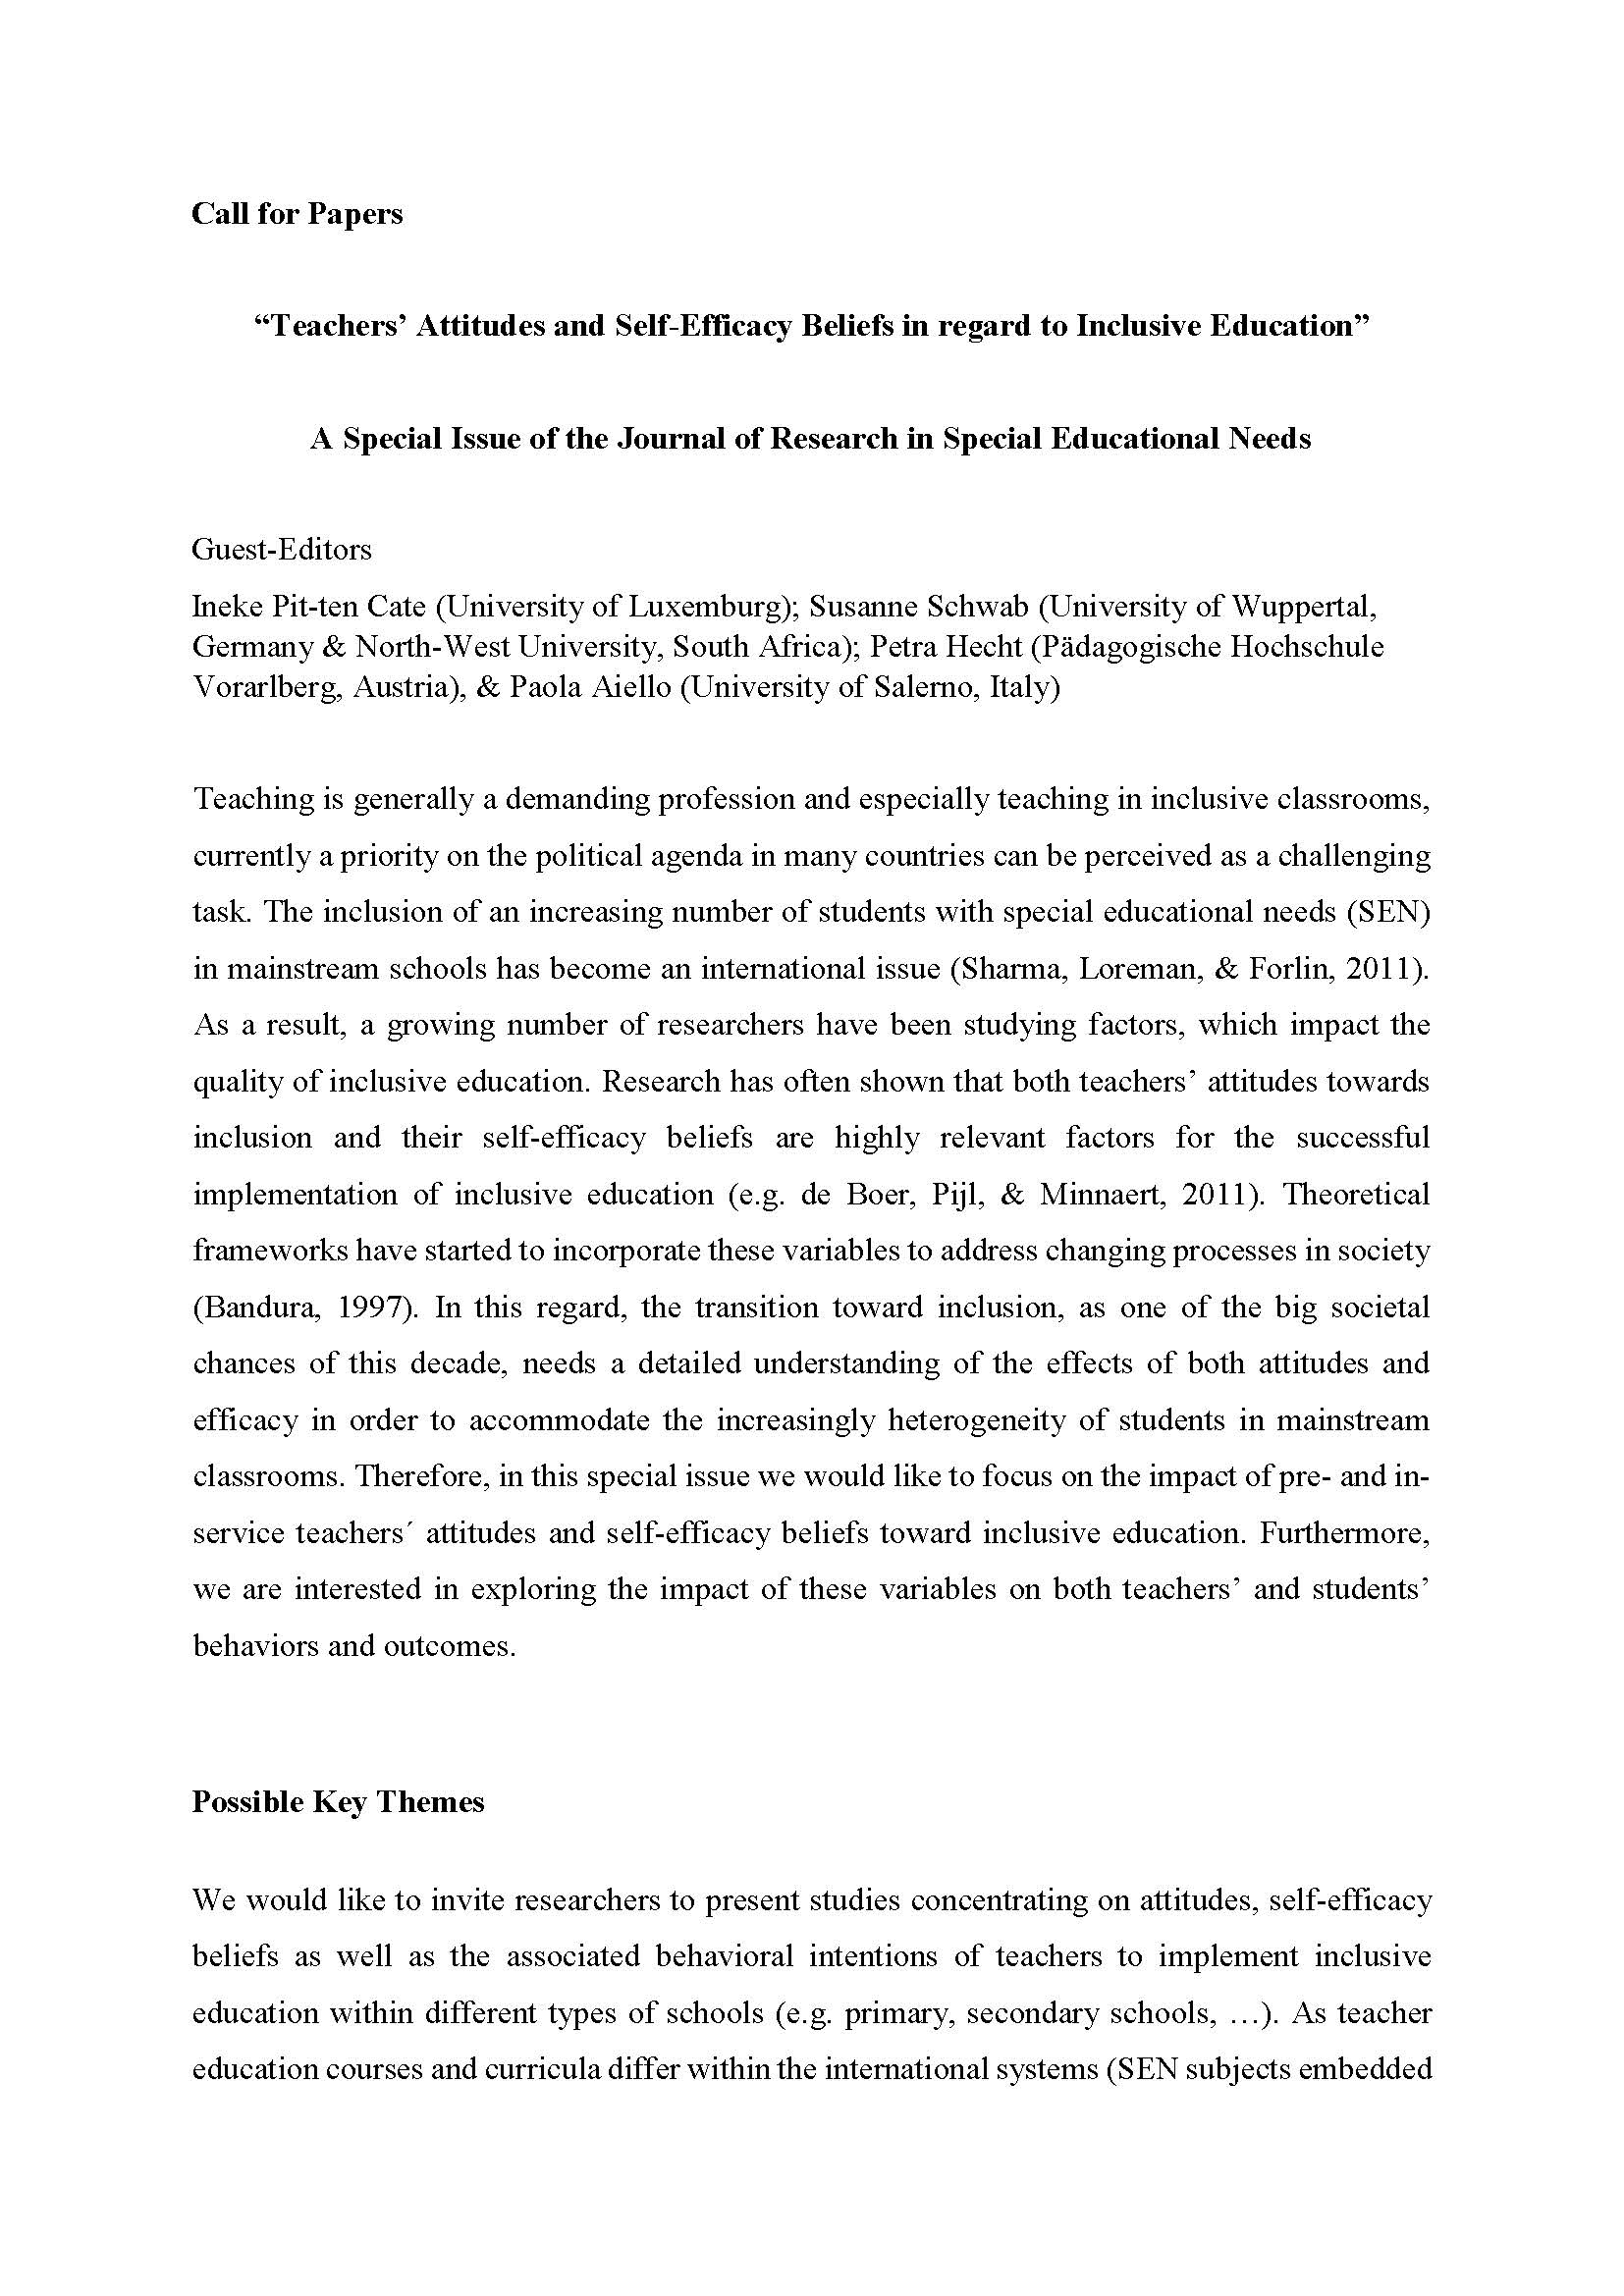 "Call for papers ""Journal of Research in Special Educational Needs"""